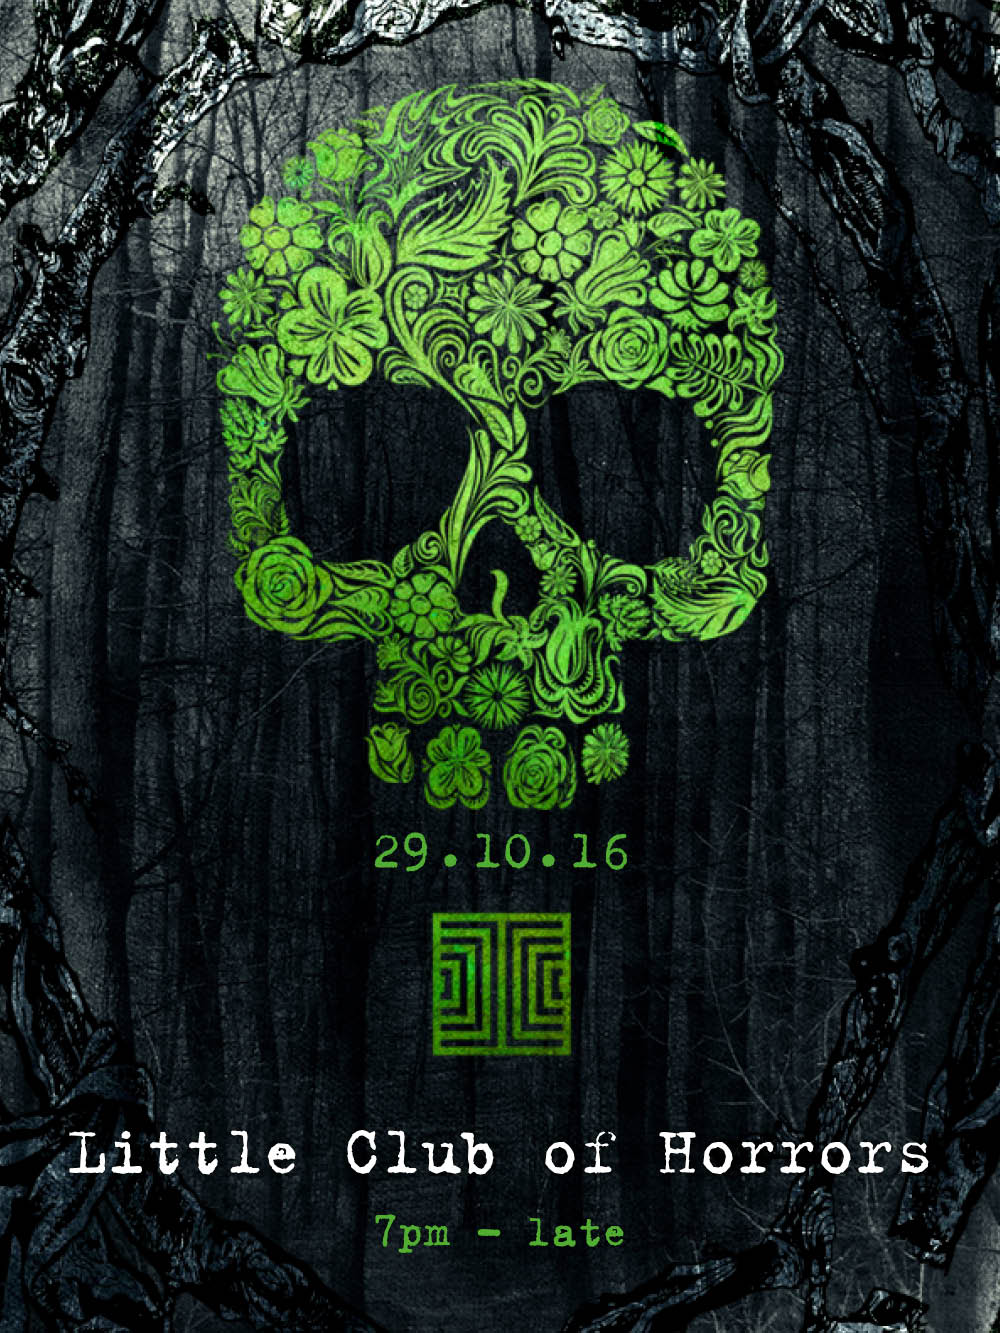 Halloween Party: Little Club of Horrors